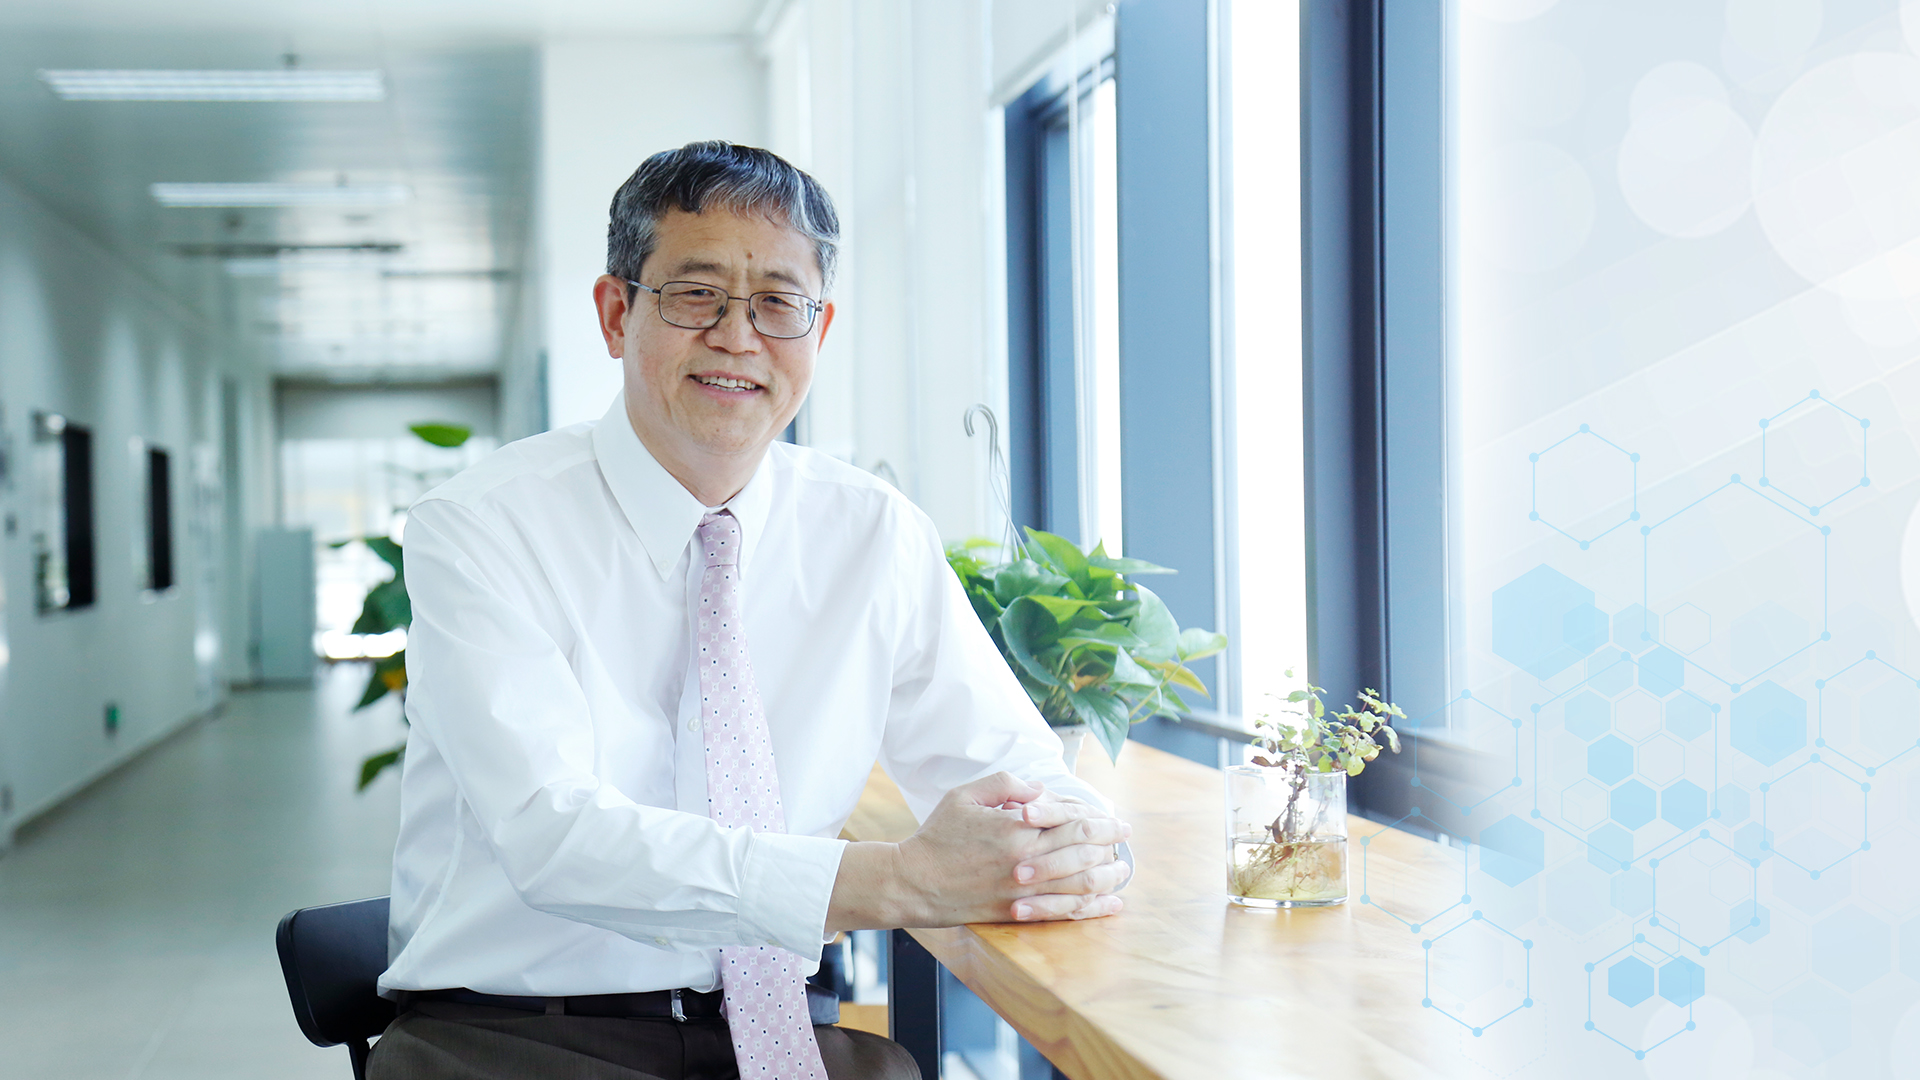 Interview with Founding Dean of the School of Medicine